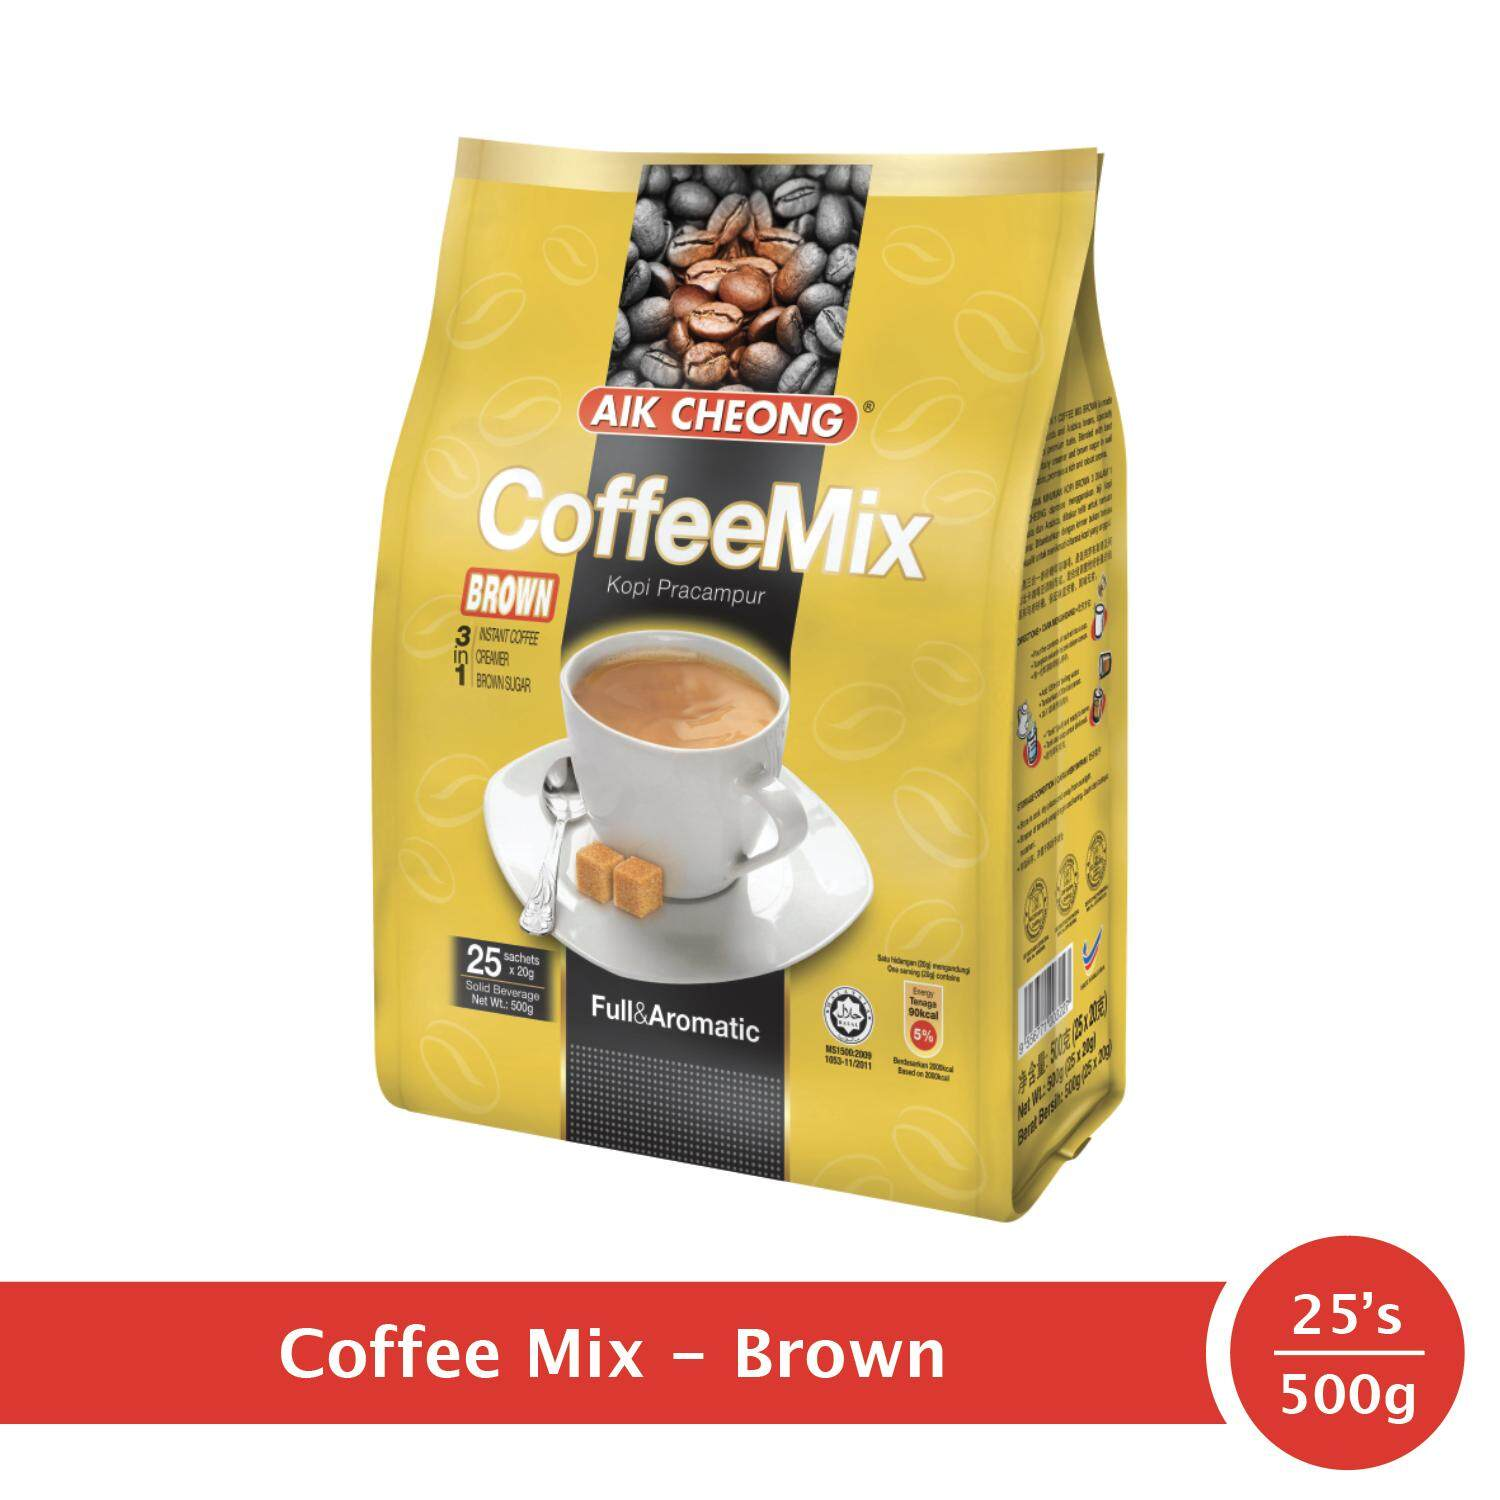 Aik Cheong Coffee Mix - Brown